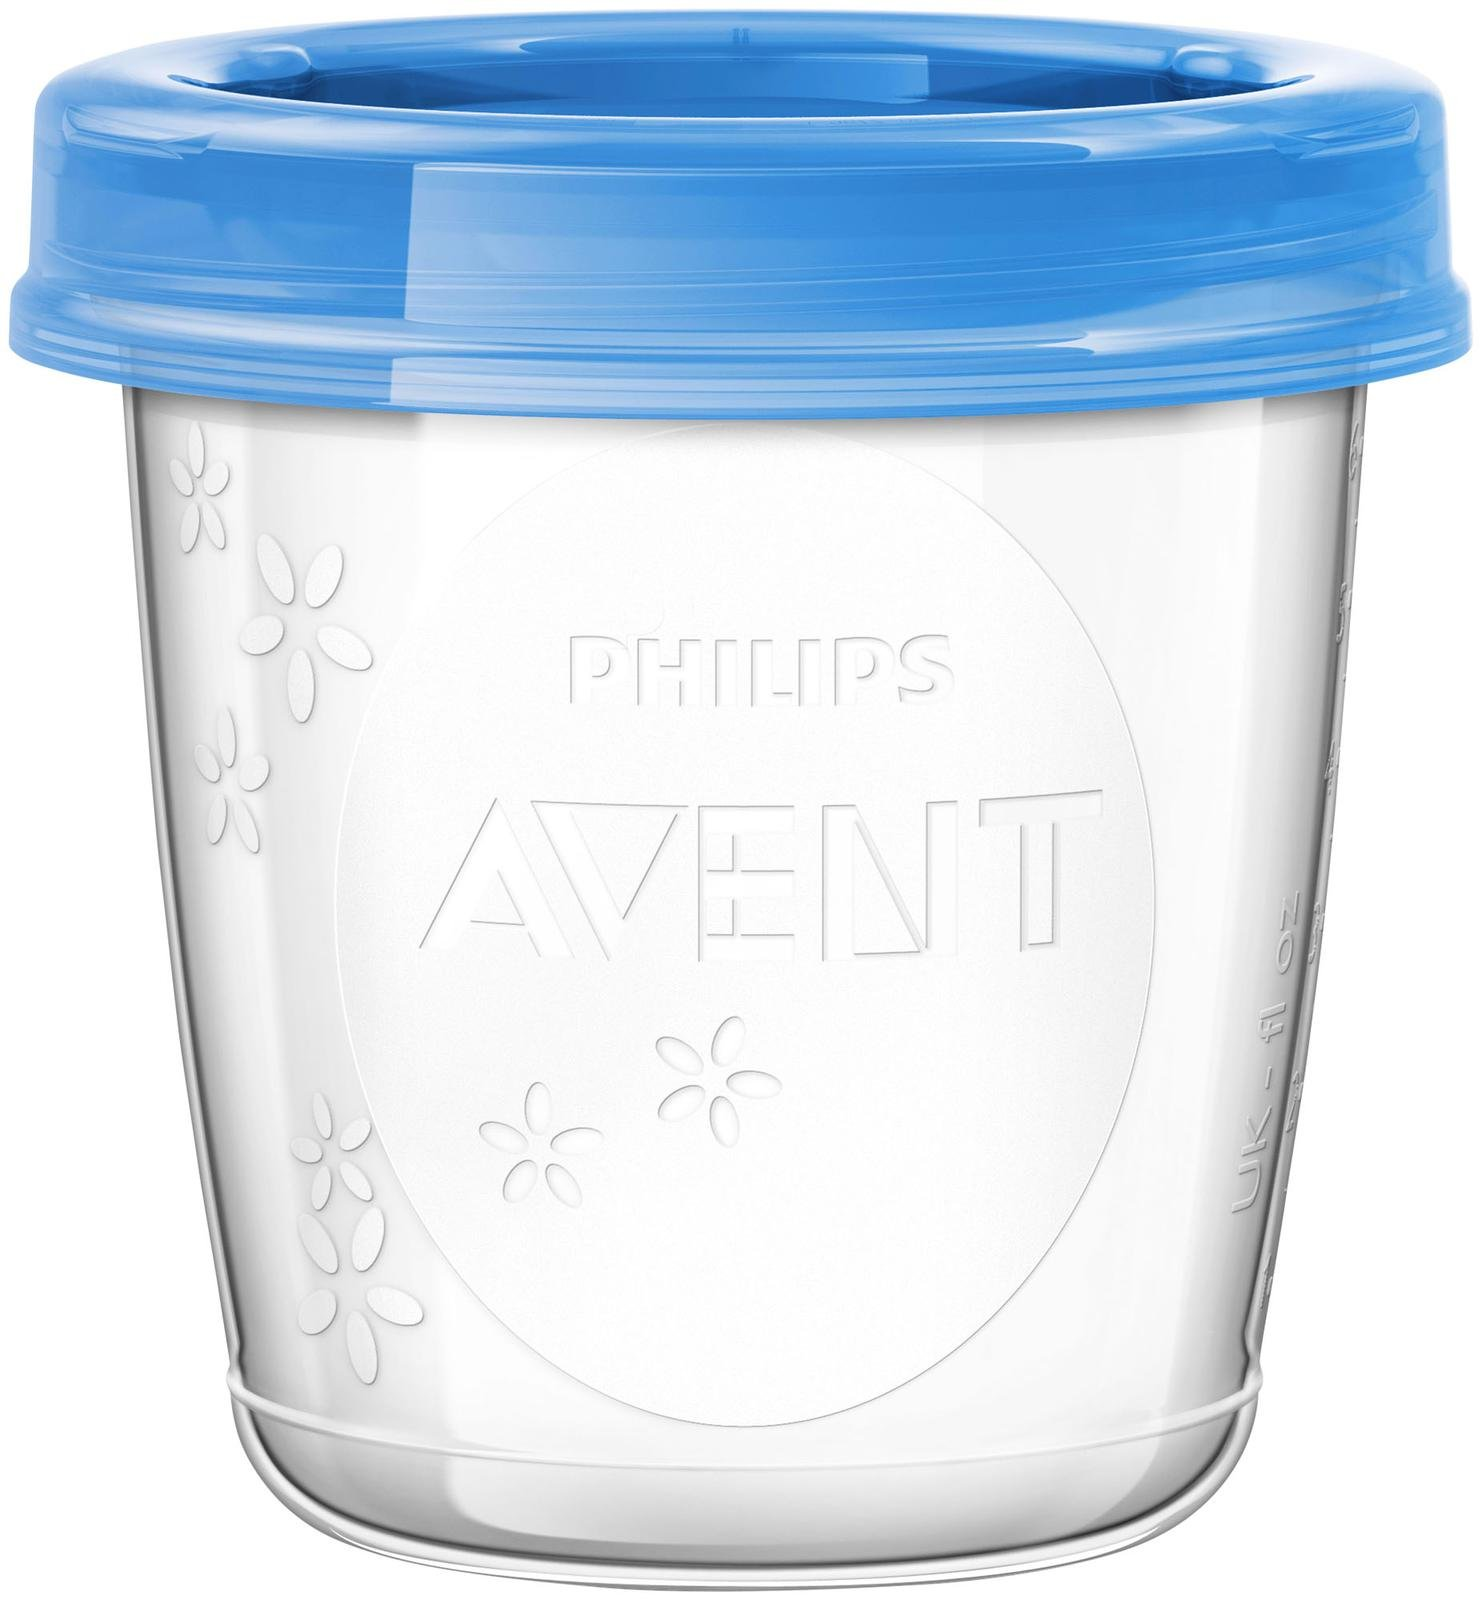 Avent Baby Breast Feeding Formula Milk Storage Infant Containers